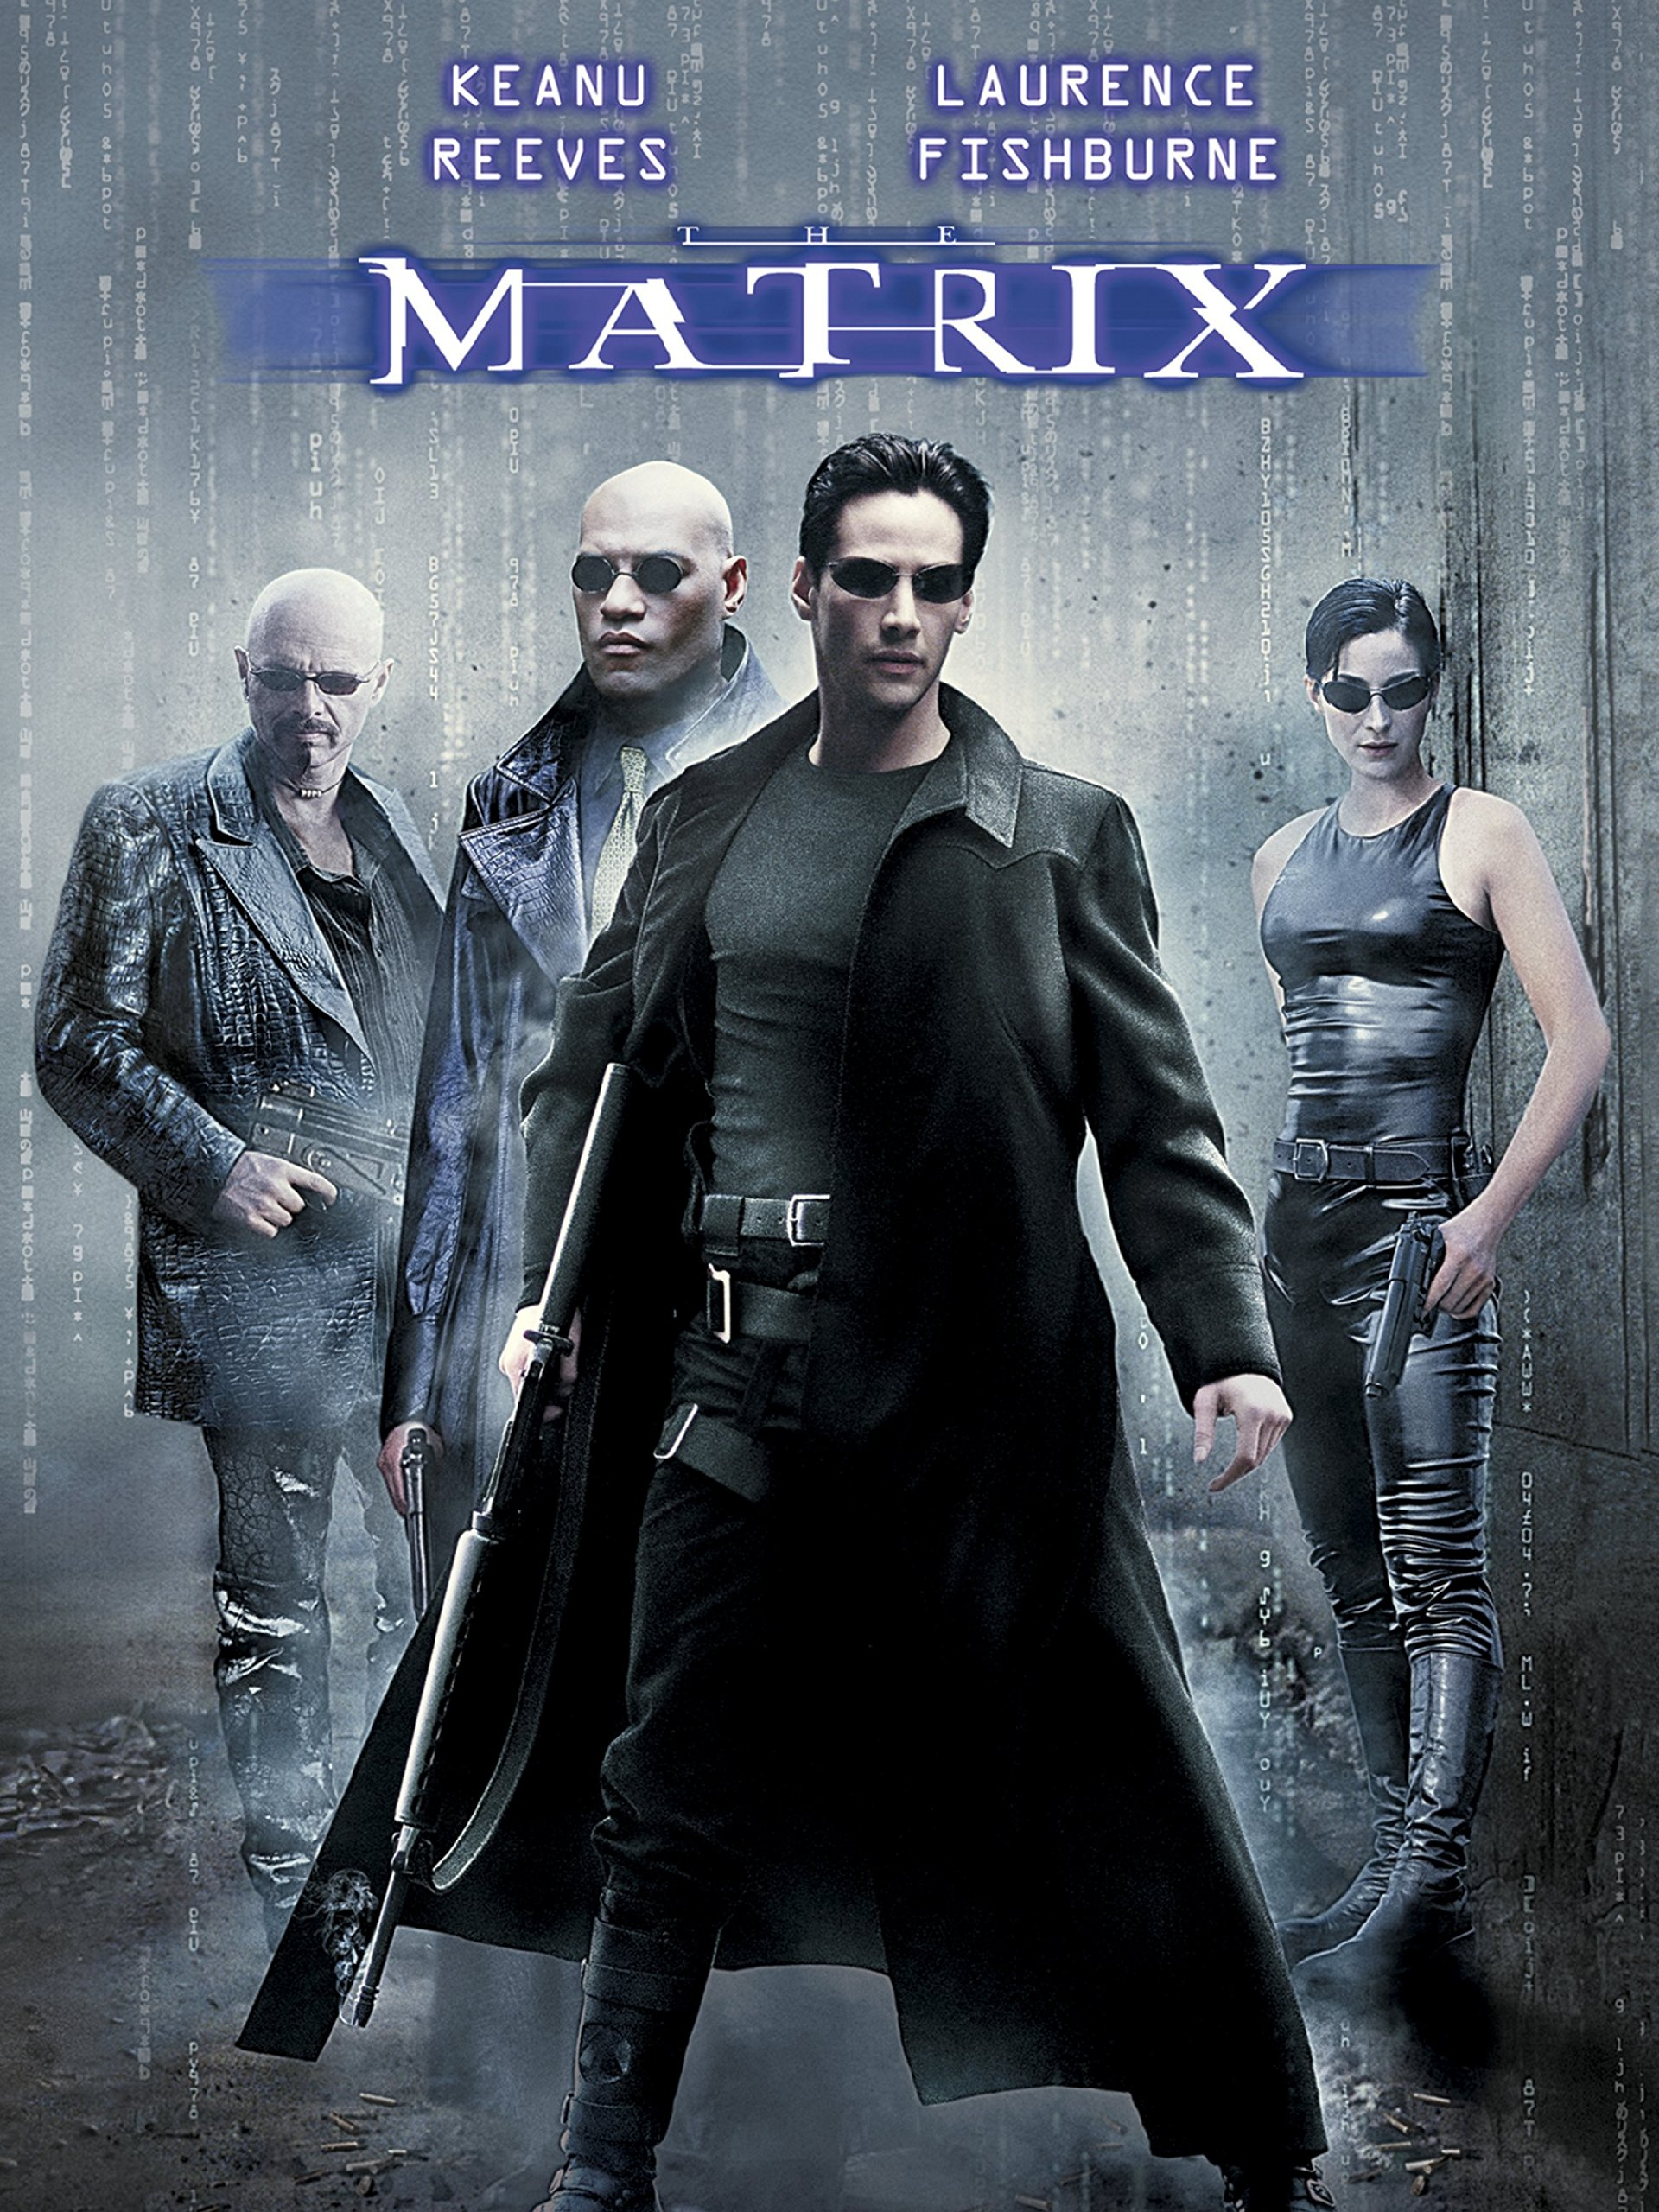 The Matrix Keanu Reeves Carrie Anne Moss Laurence Neo Trinity My Amplifier Fishburne Hugo Weaving Amazon Digital Services Llc